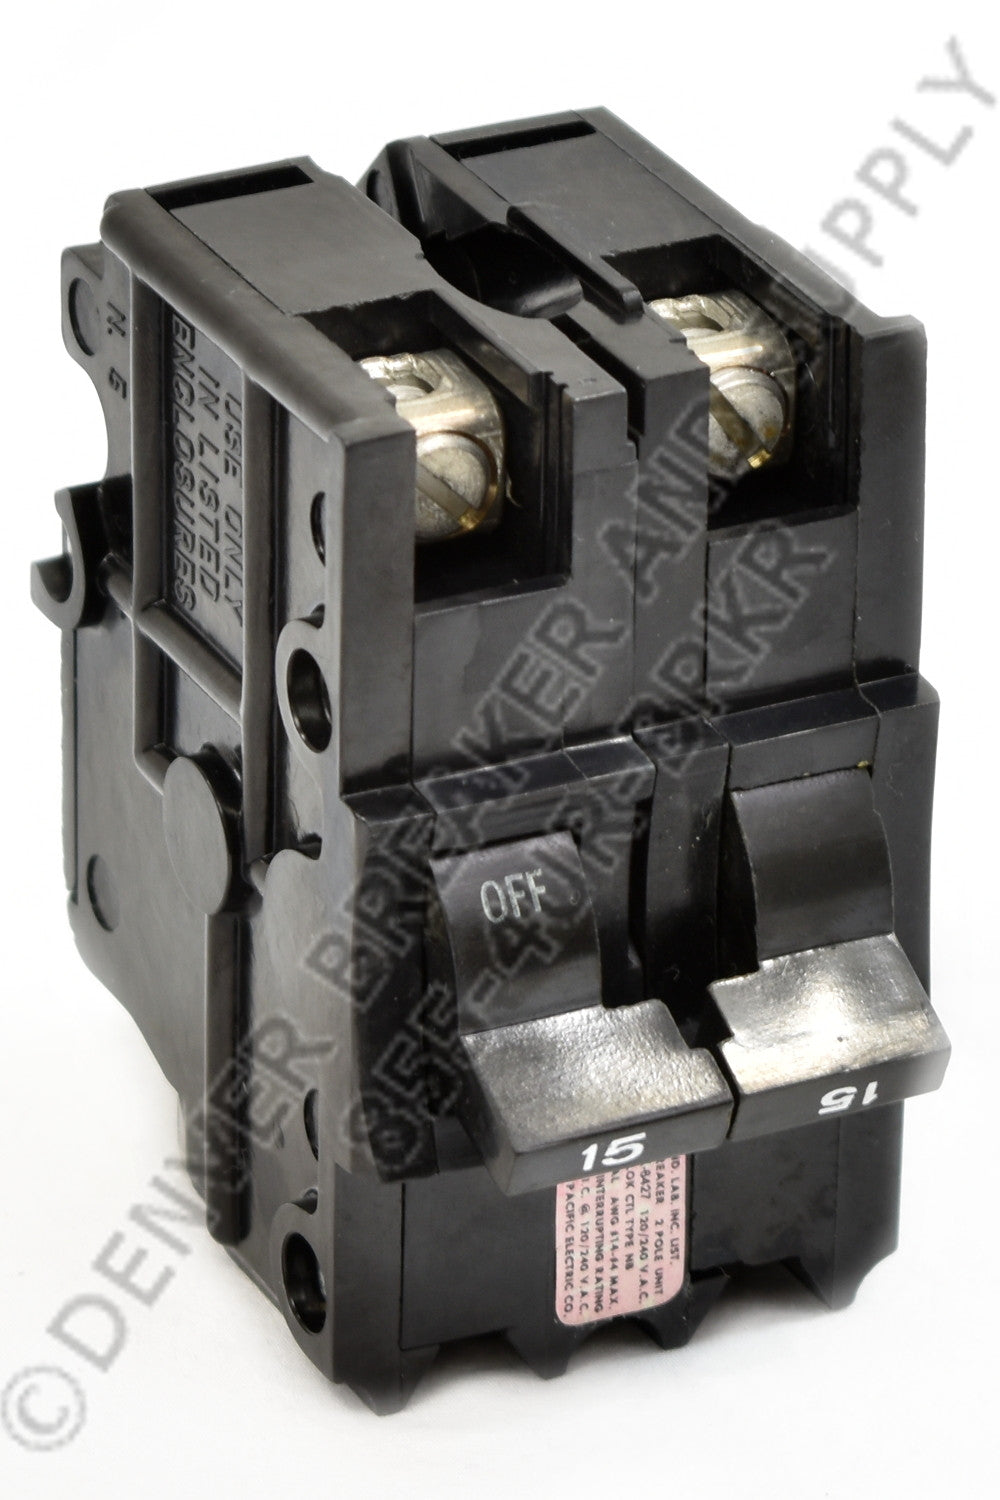 federal pacific nb2100 circuit breakers molded case denver breakerfederal pacific nb2100 circuit breaker